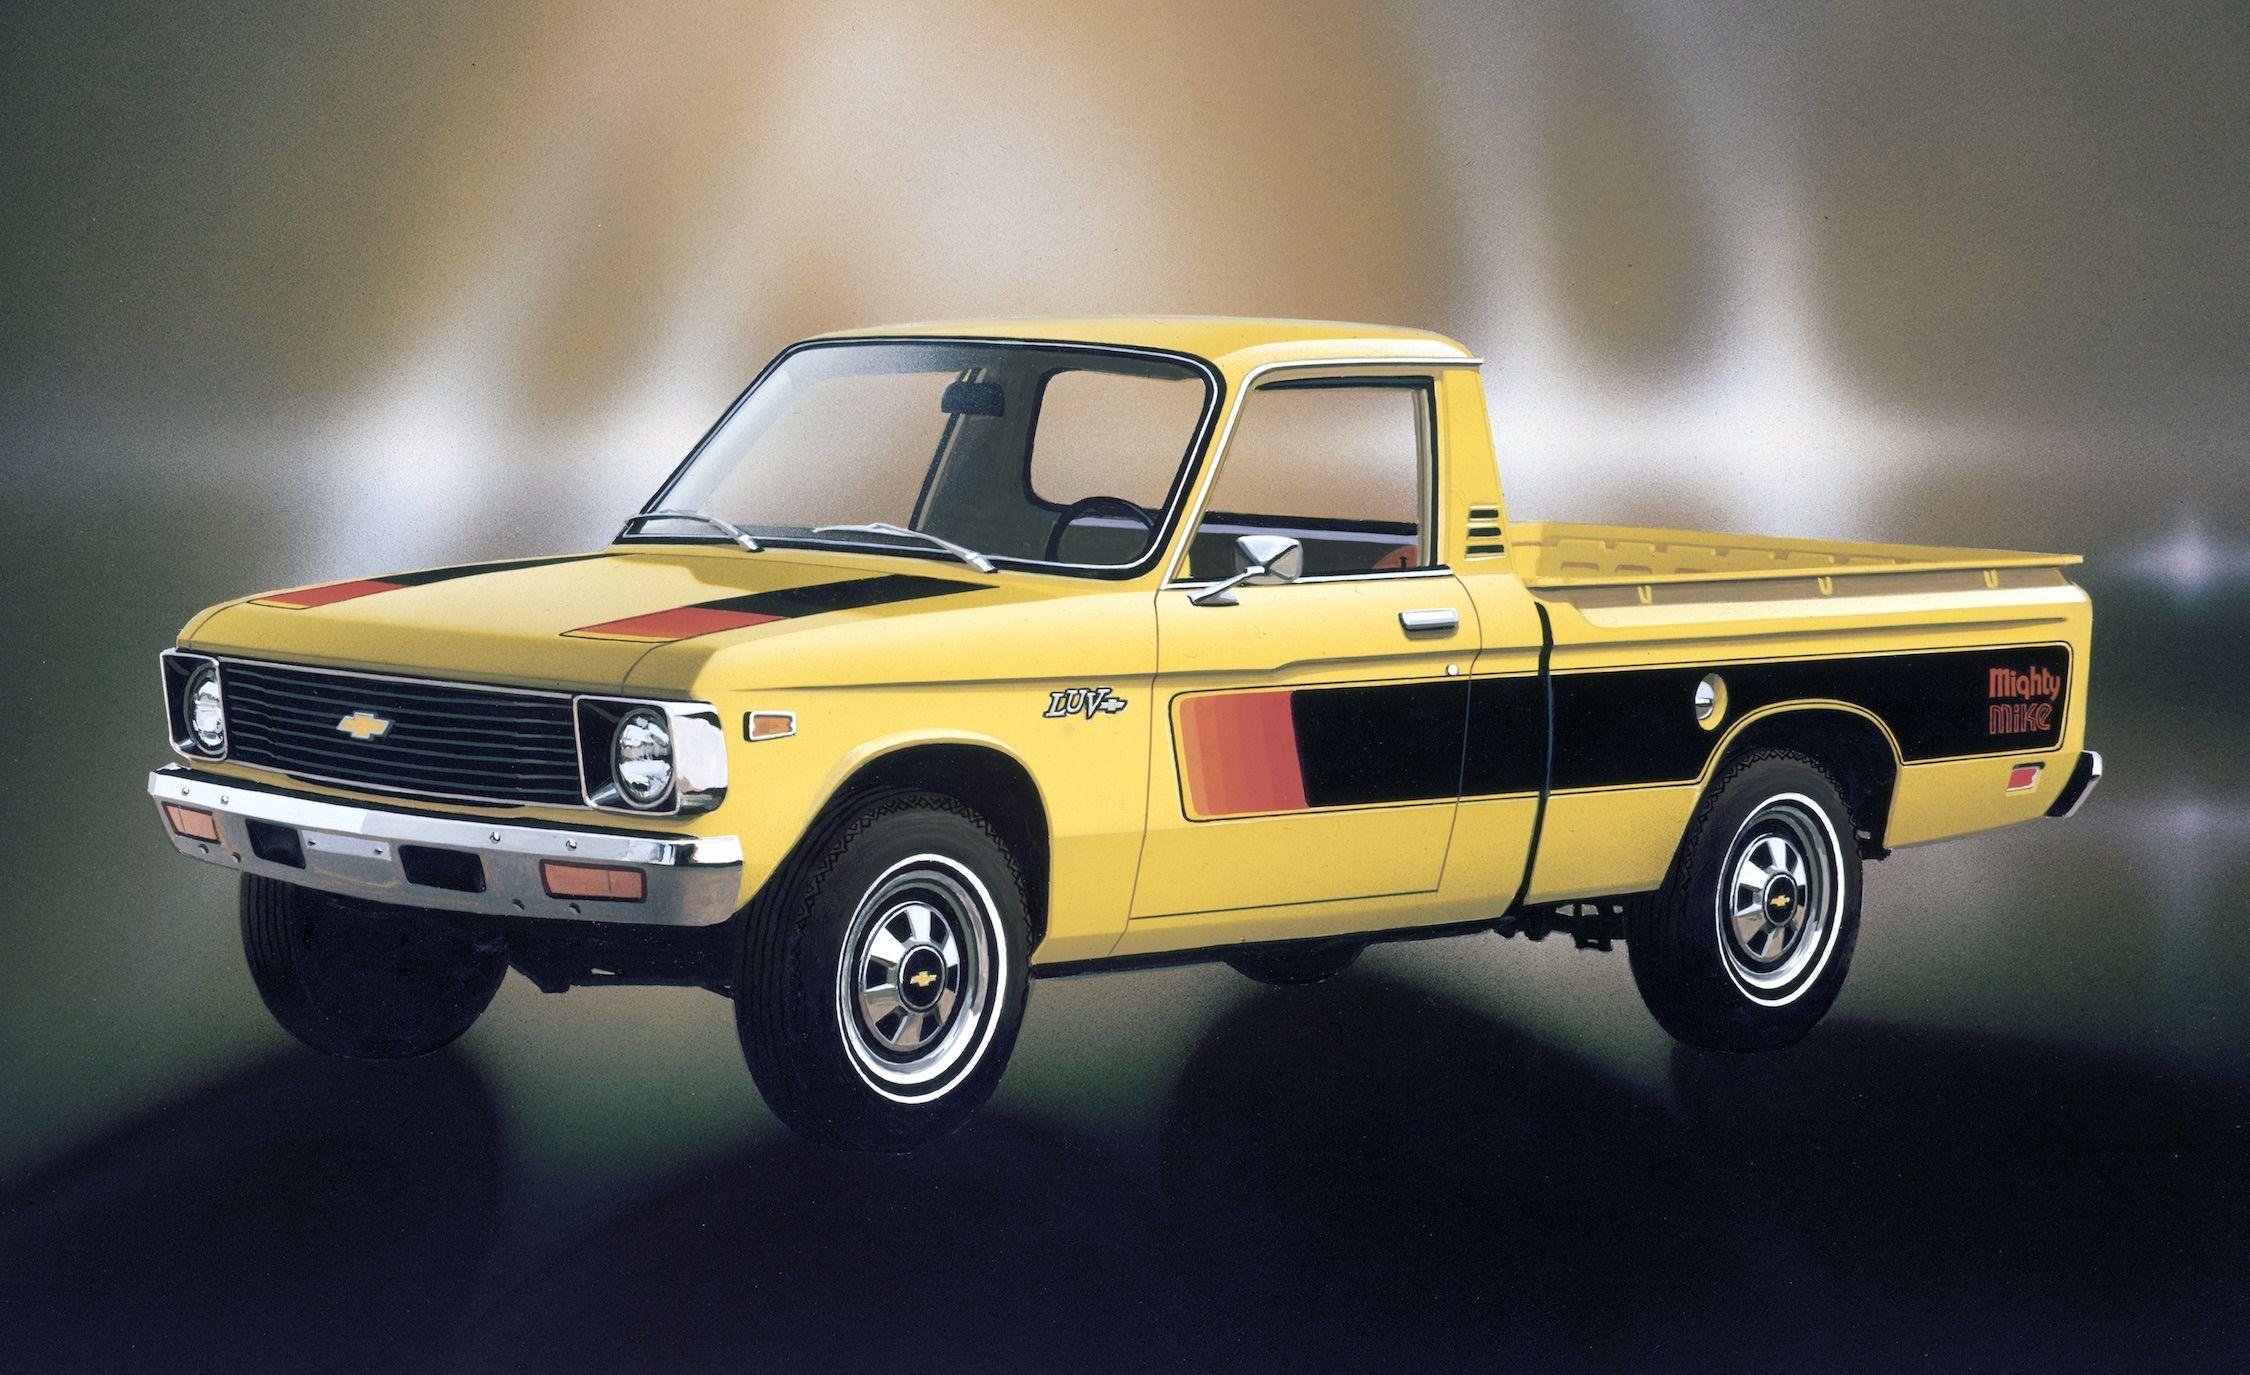 Mighty-Mike-Luv-Chevy.jpg.b512fa6b91a70e7566e2df1b232cd7ab.jpg